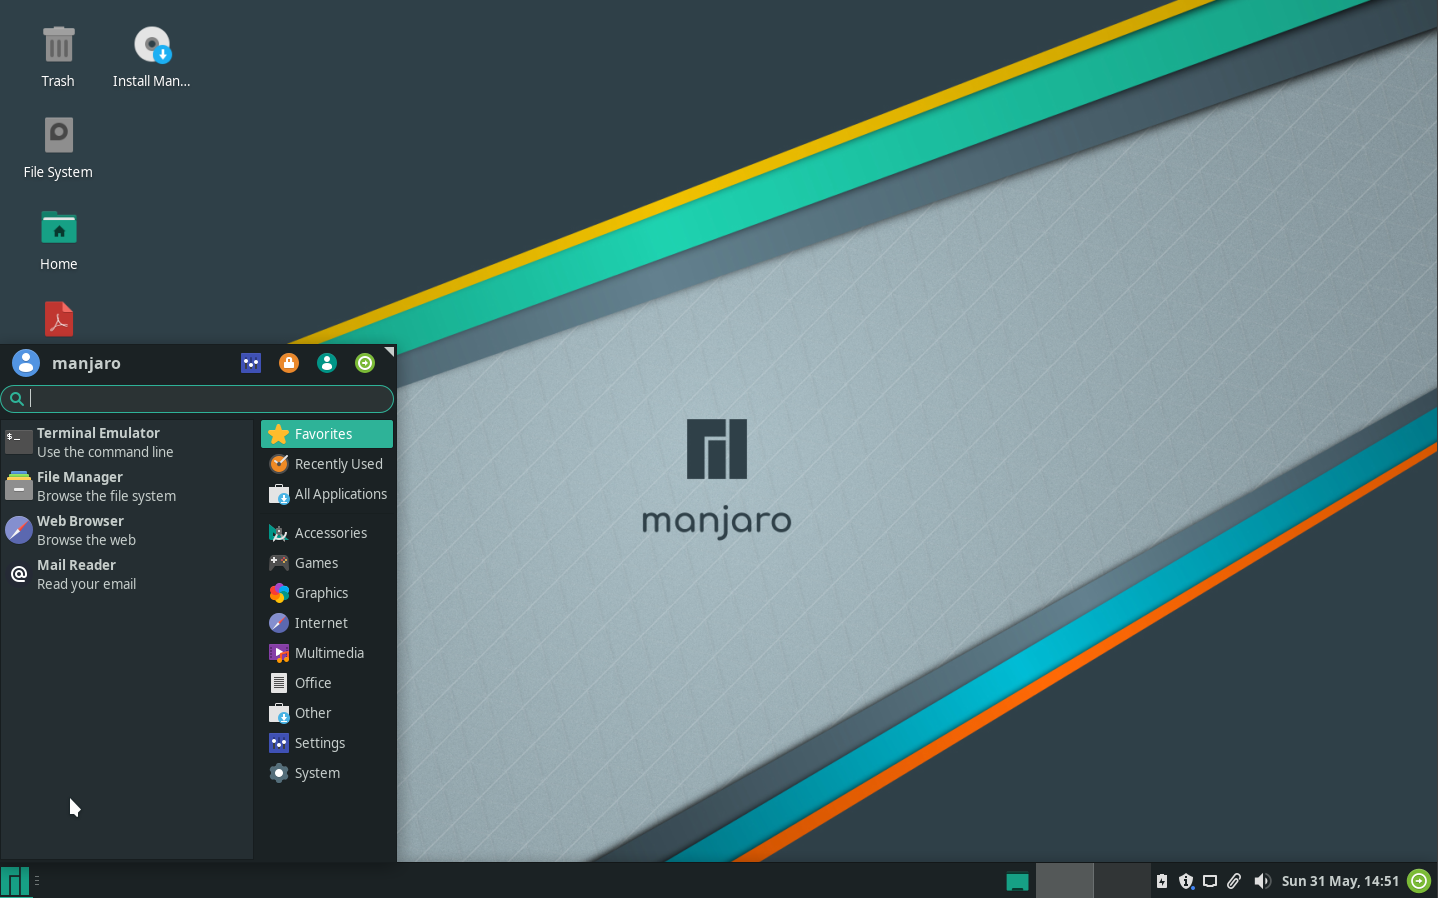 images/welcome-to-manjaro/app-menu.png